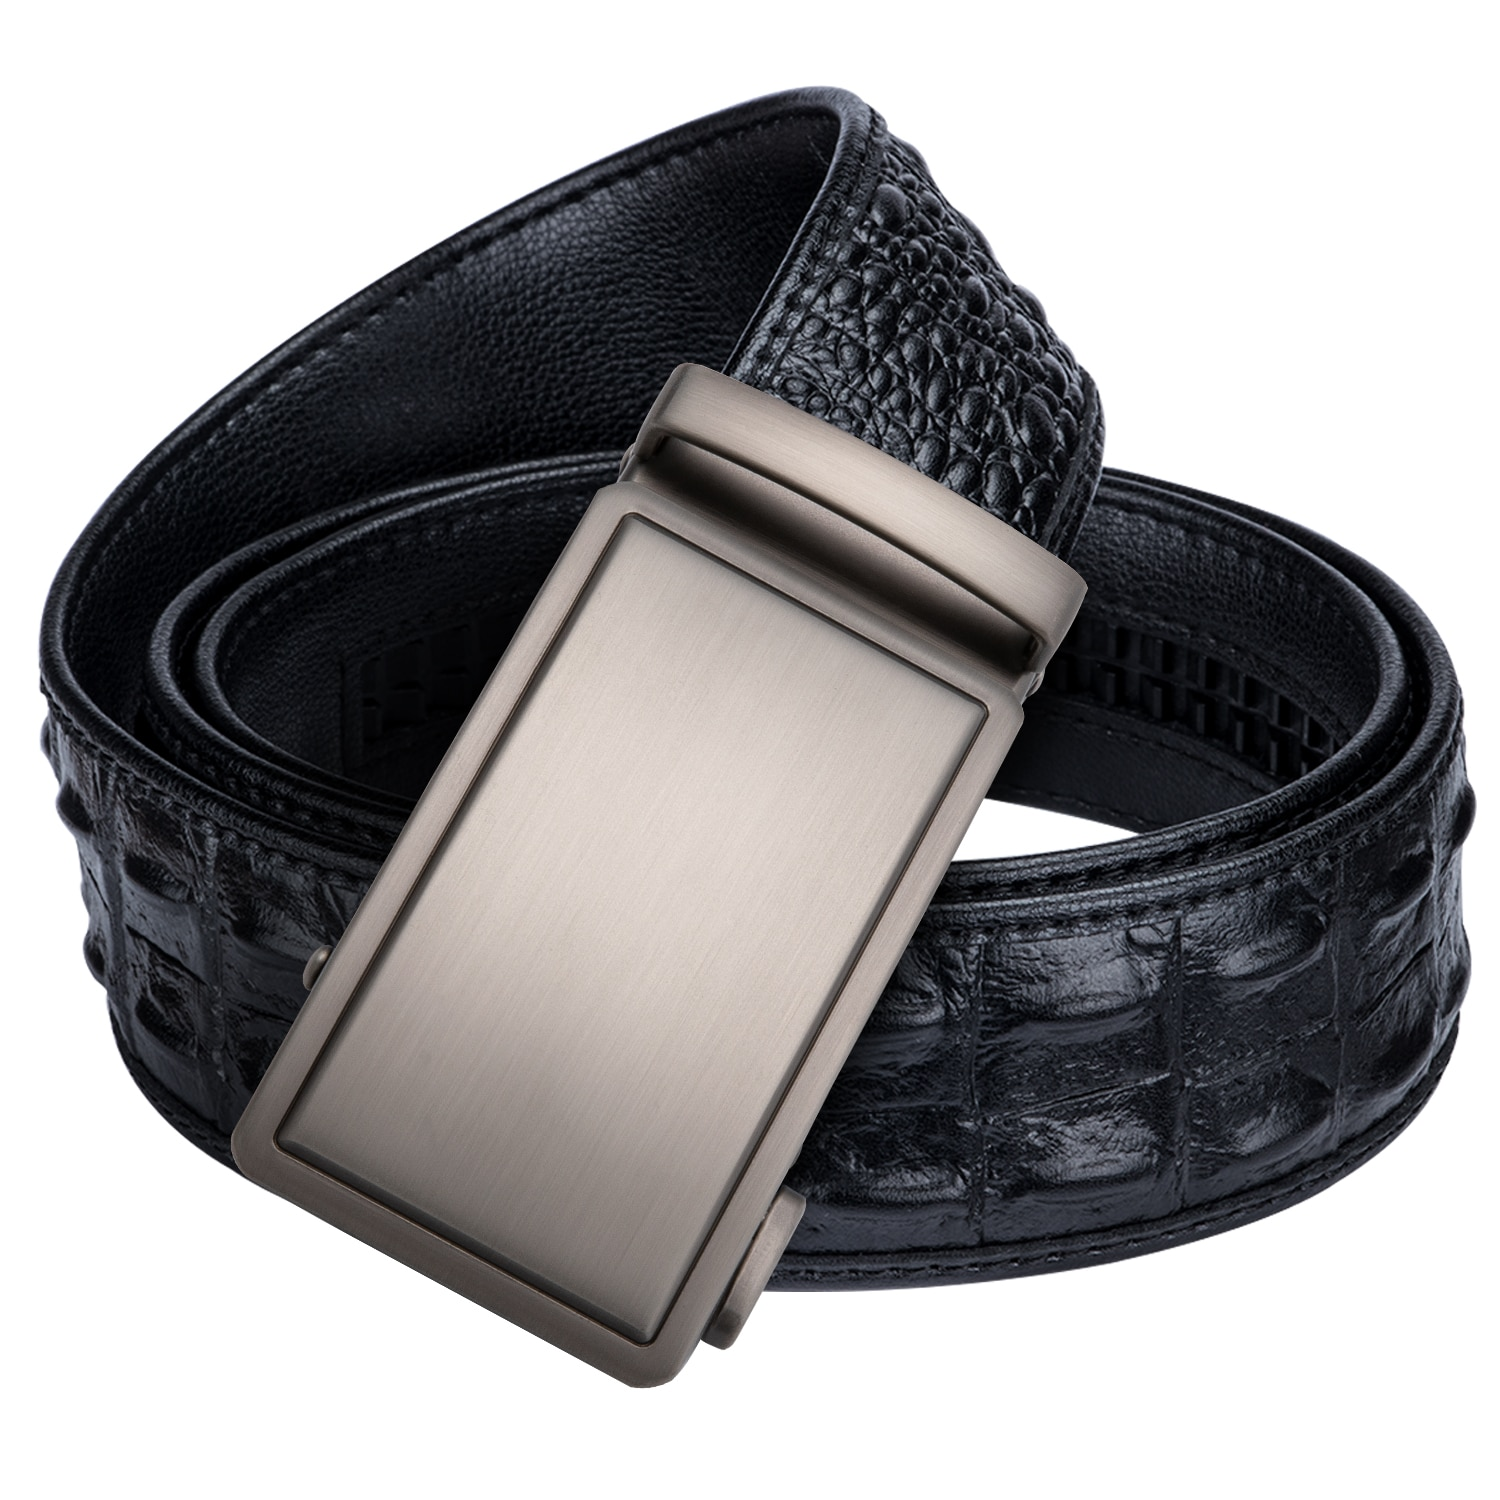 Brand Mens Belt High Quality Cowhide Leather Belt for Jeans Formal Automatic Buckle Belts Wholesale Price Dropship PD-2011-FA